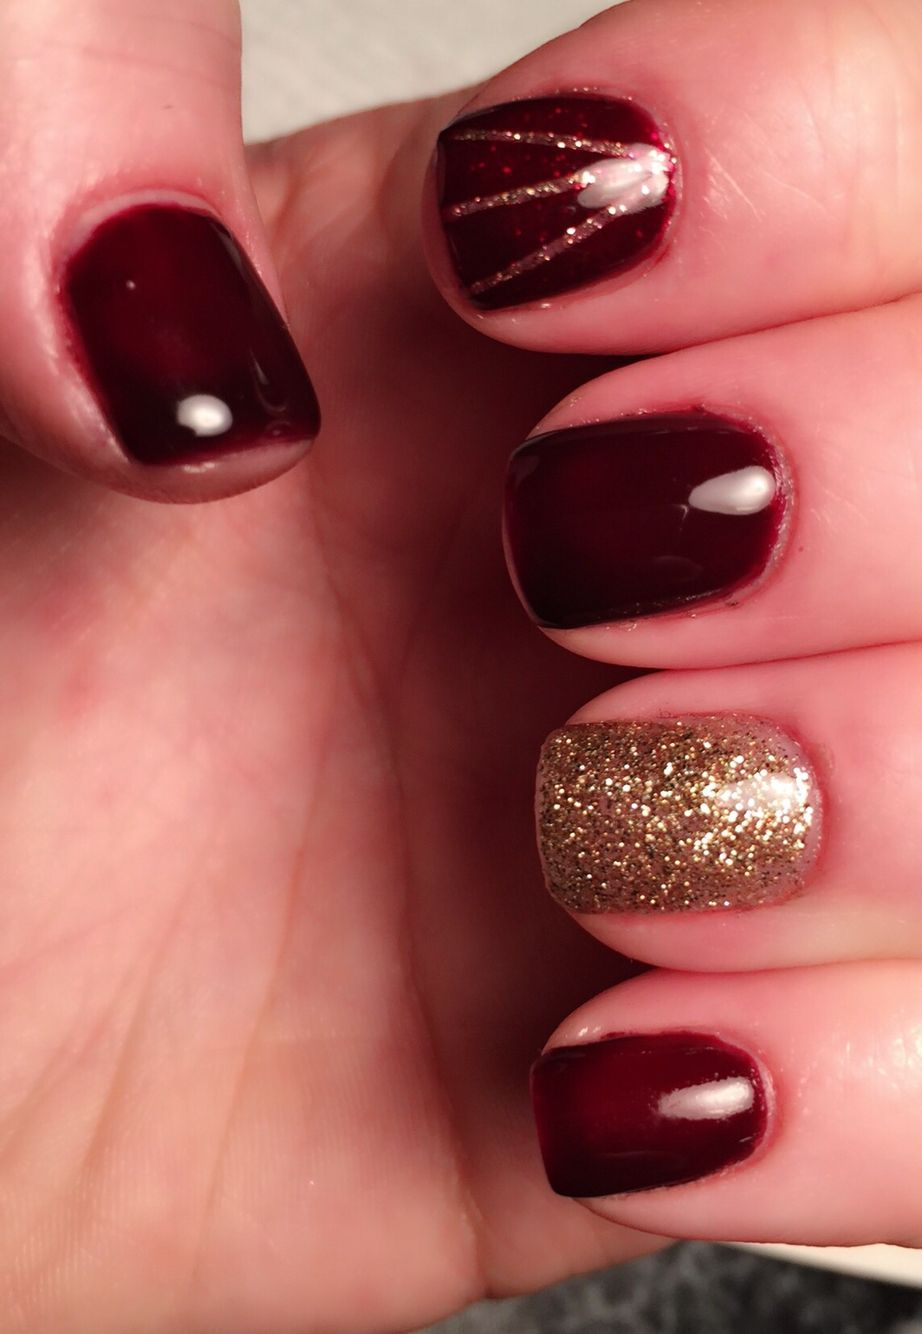 Dark red with gold details Gellish OPI Shellac | Nails | Pinterest ...